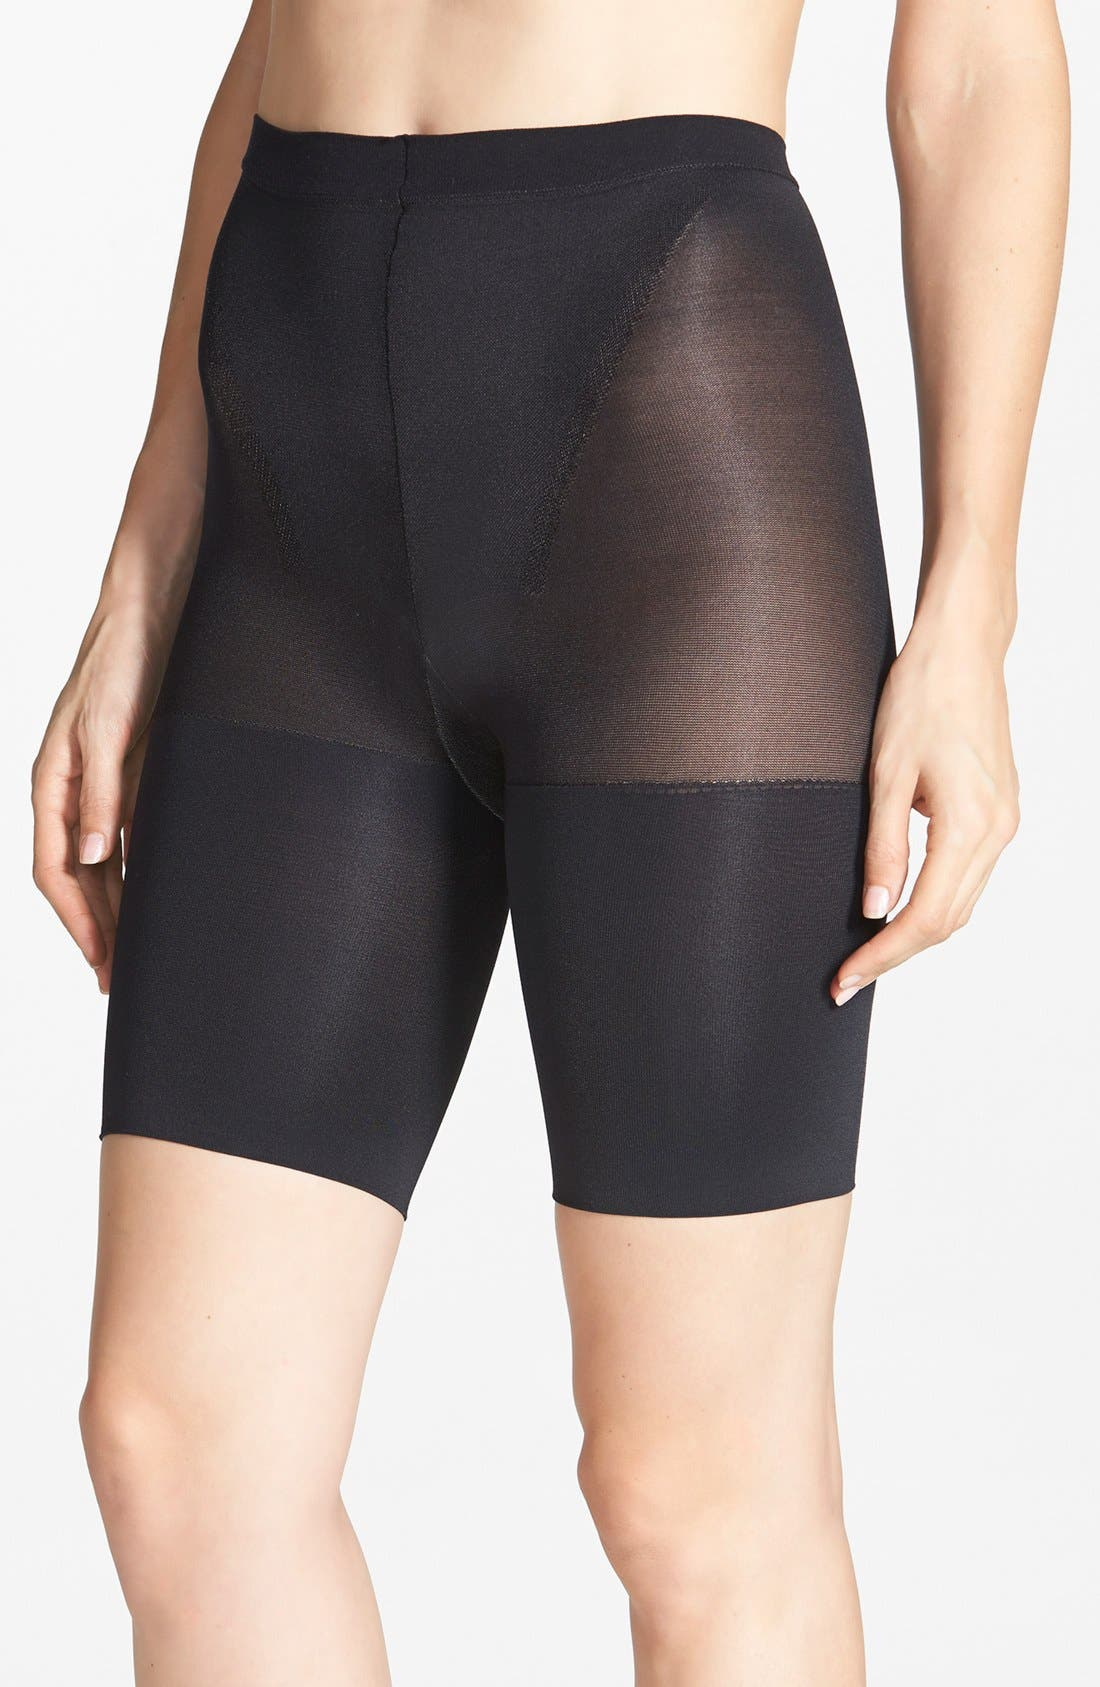 Main Image - SPANX® 'In-Power Line' Super Power Panties Mid Thigh Shaper (Regular & Plus Size)